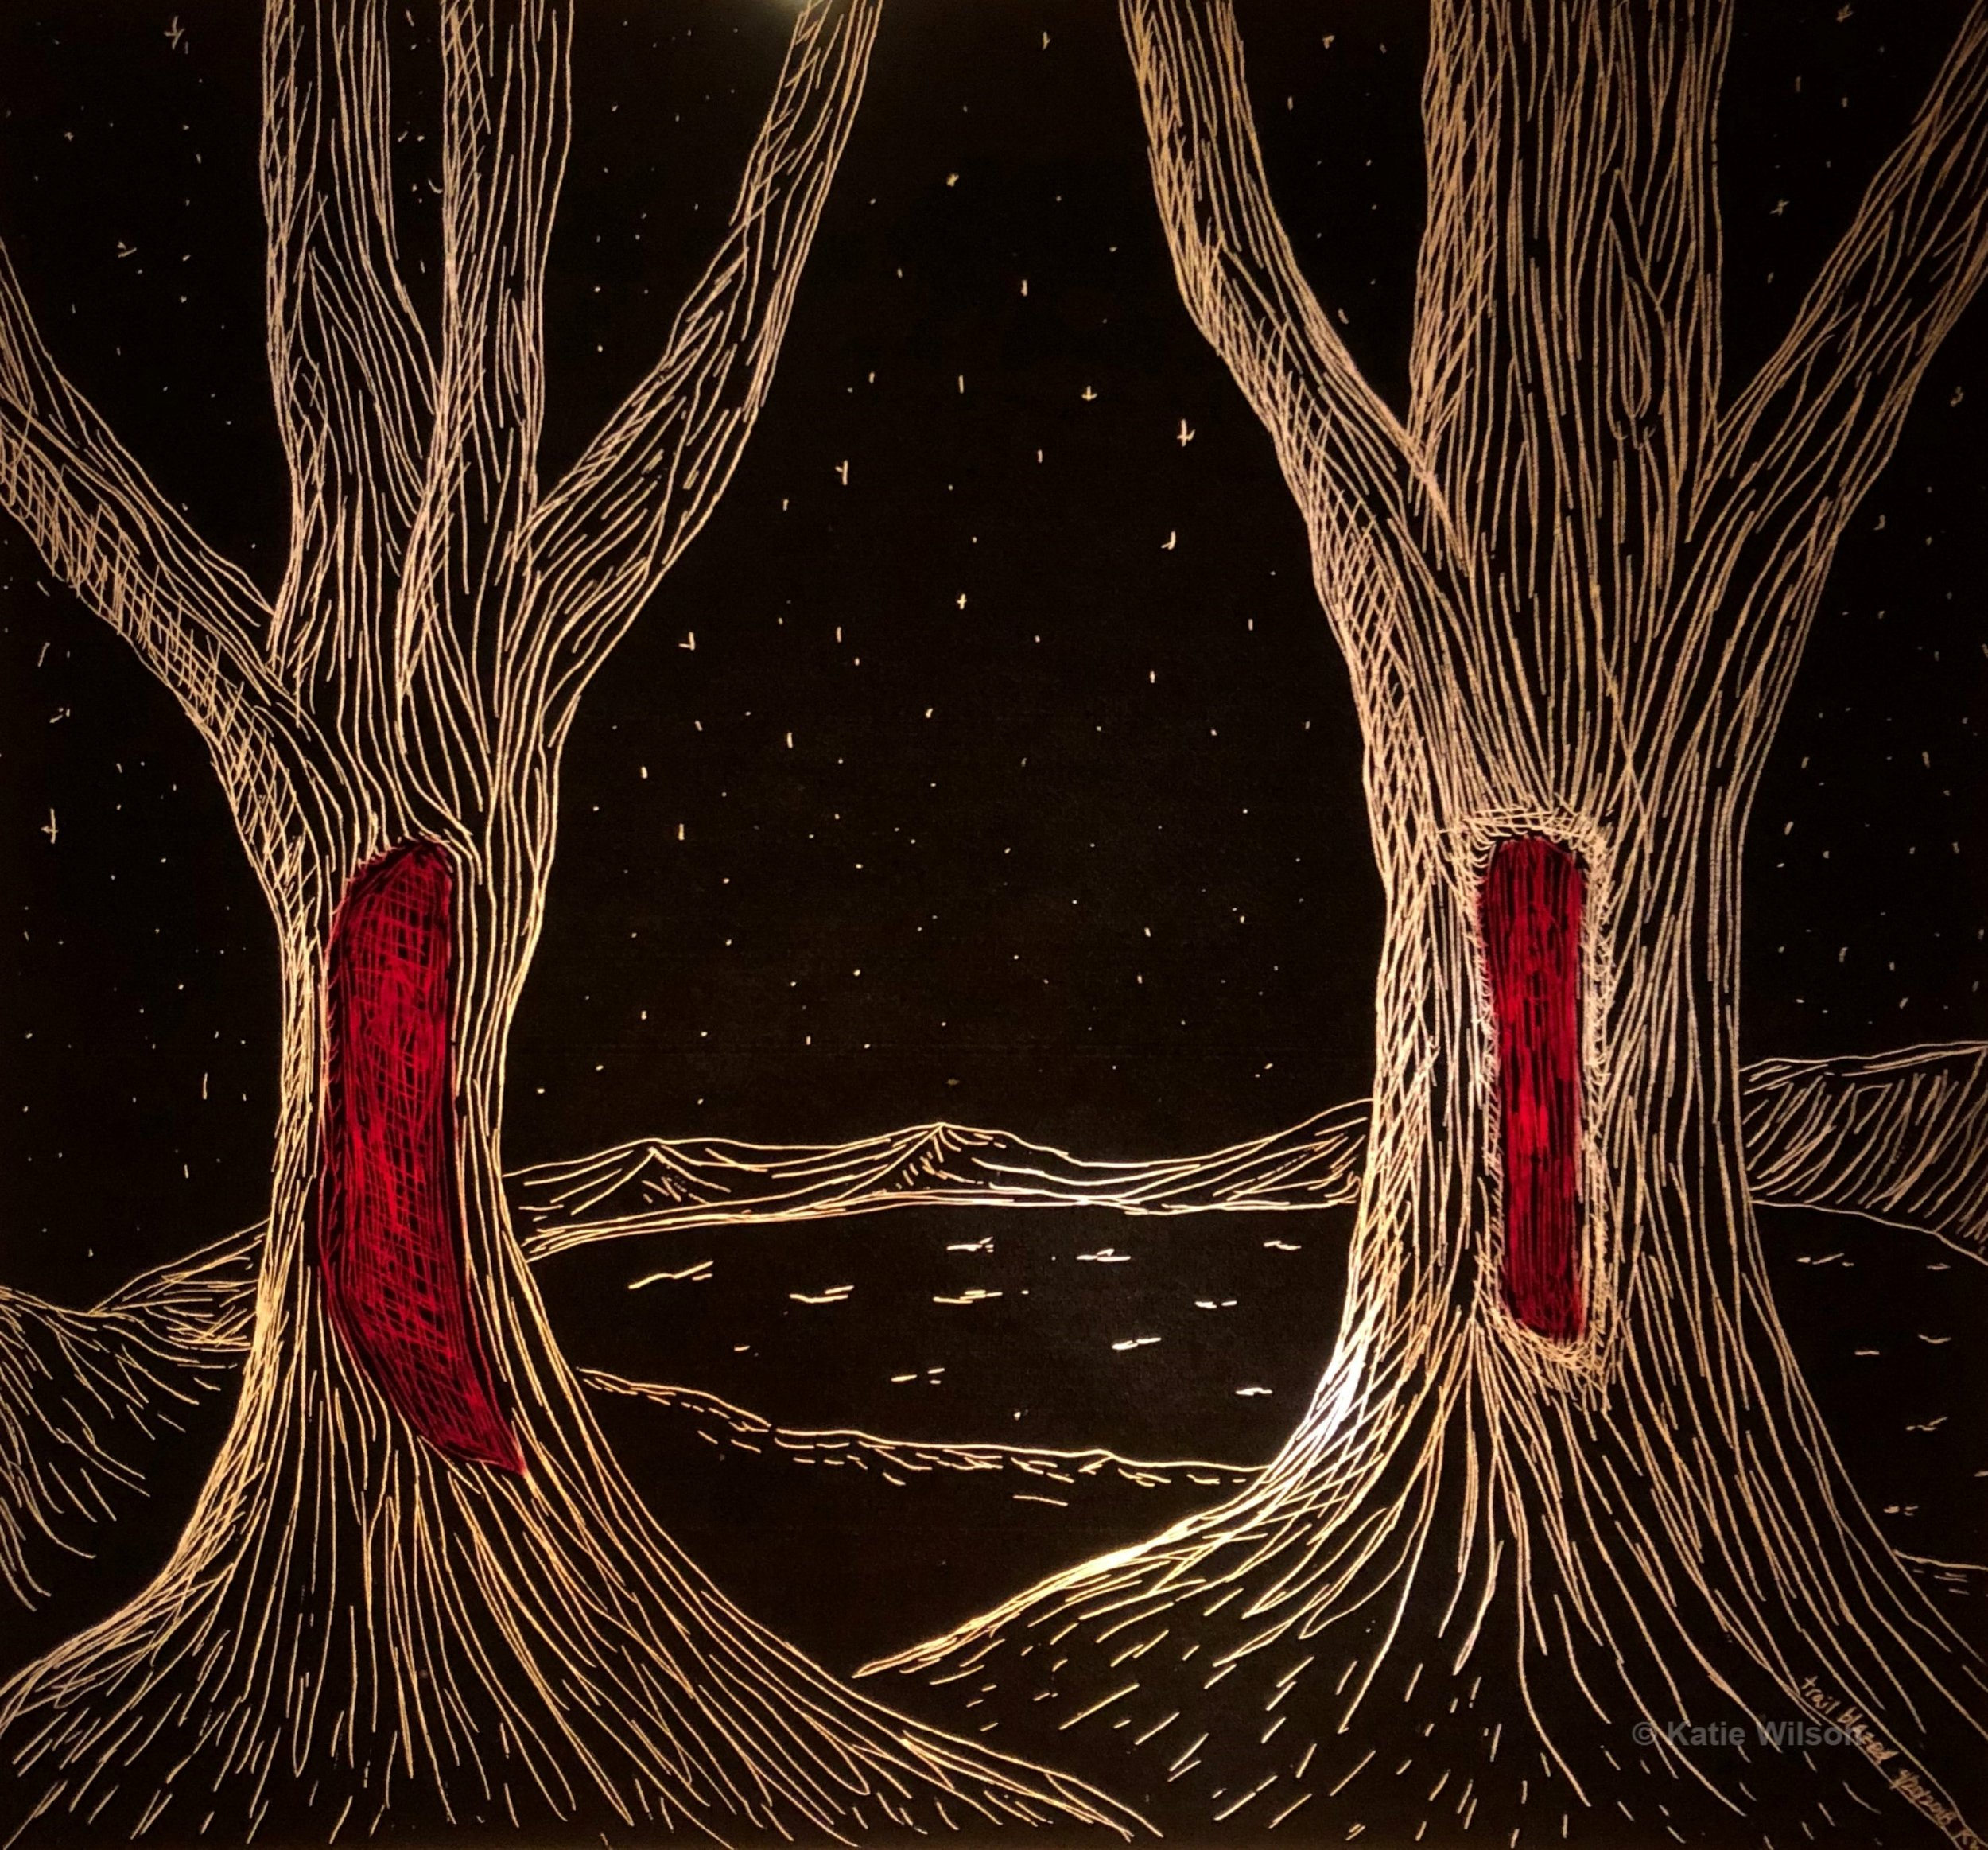 """Trail Blazed, 2018 5.5"""" x 6""""   Every night they glow red again, just like when the lighting struck."""